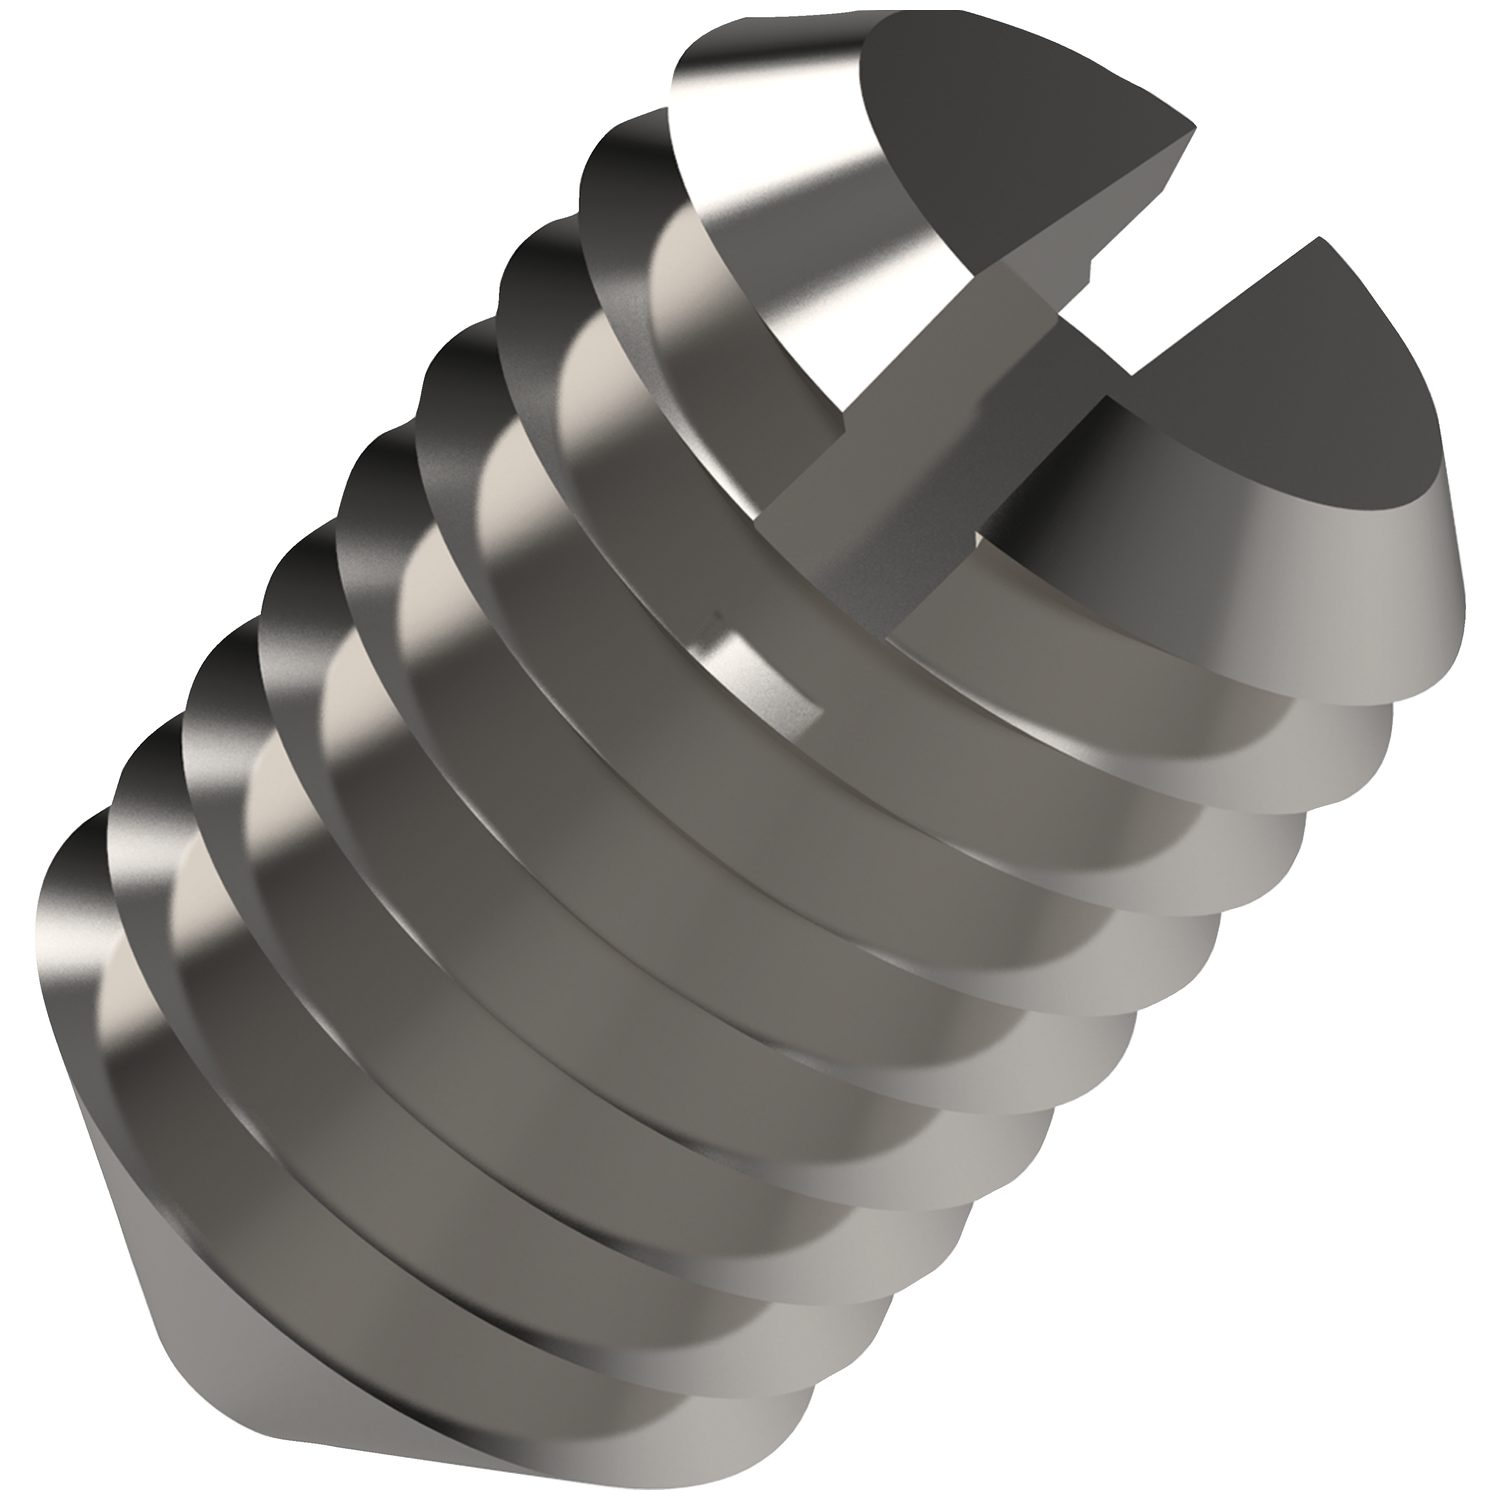 P0278.A4 - Slotted Set Screws Cone Point